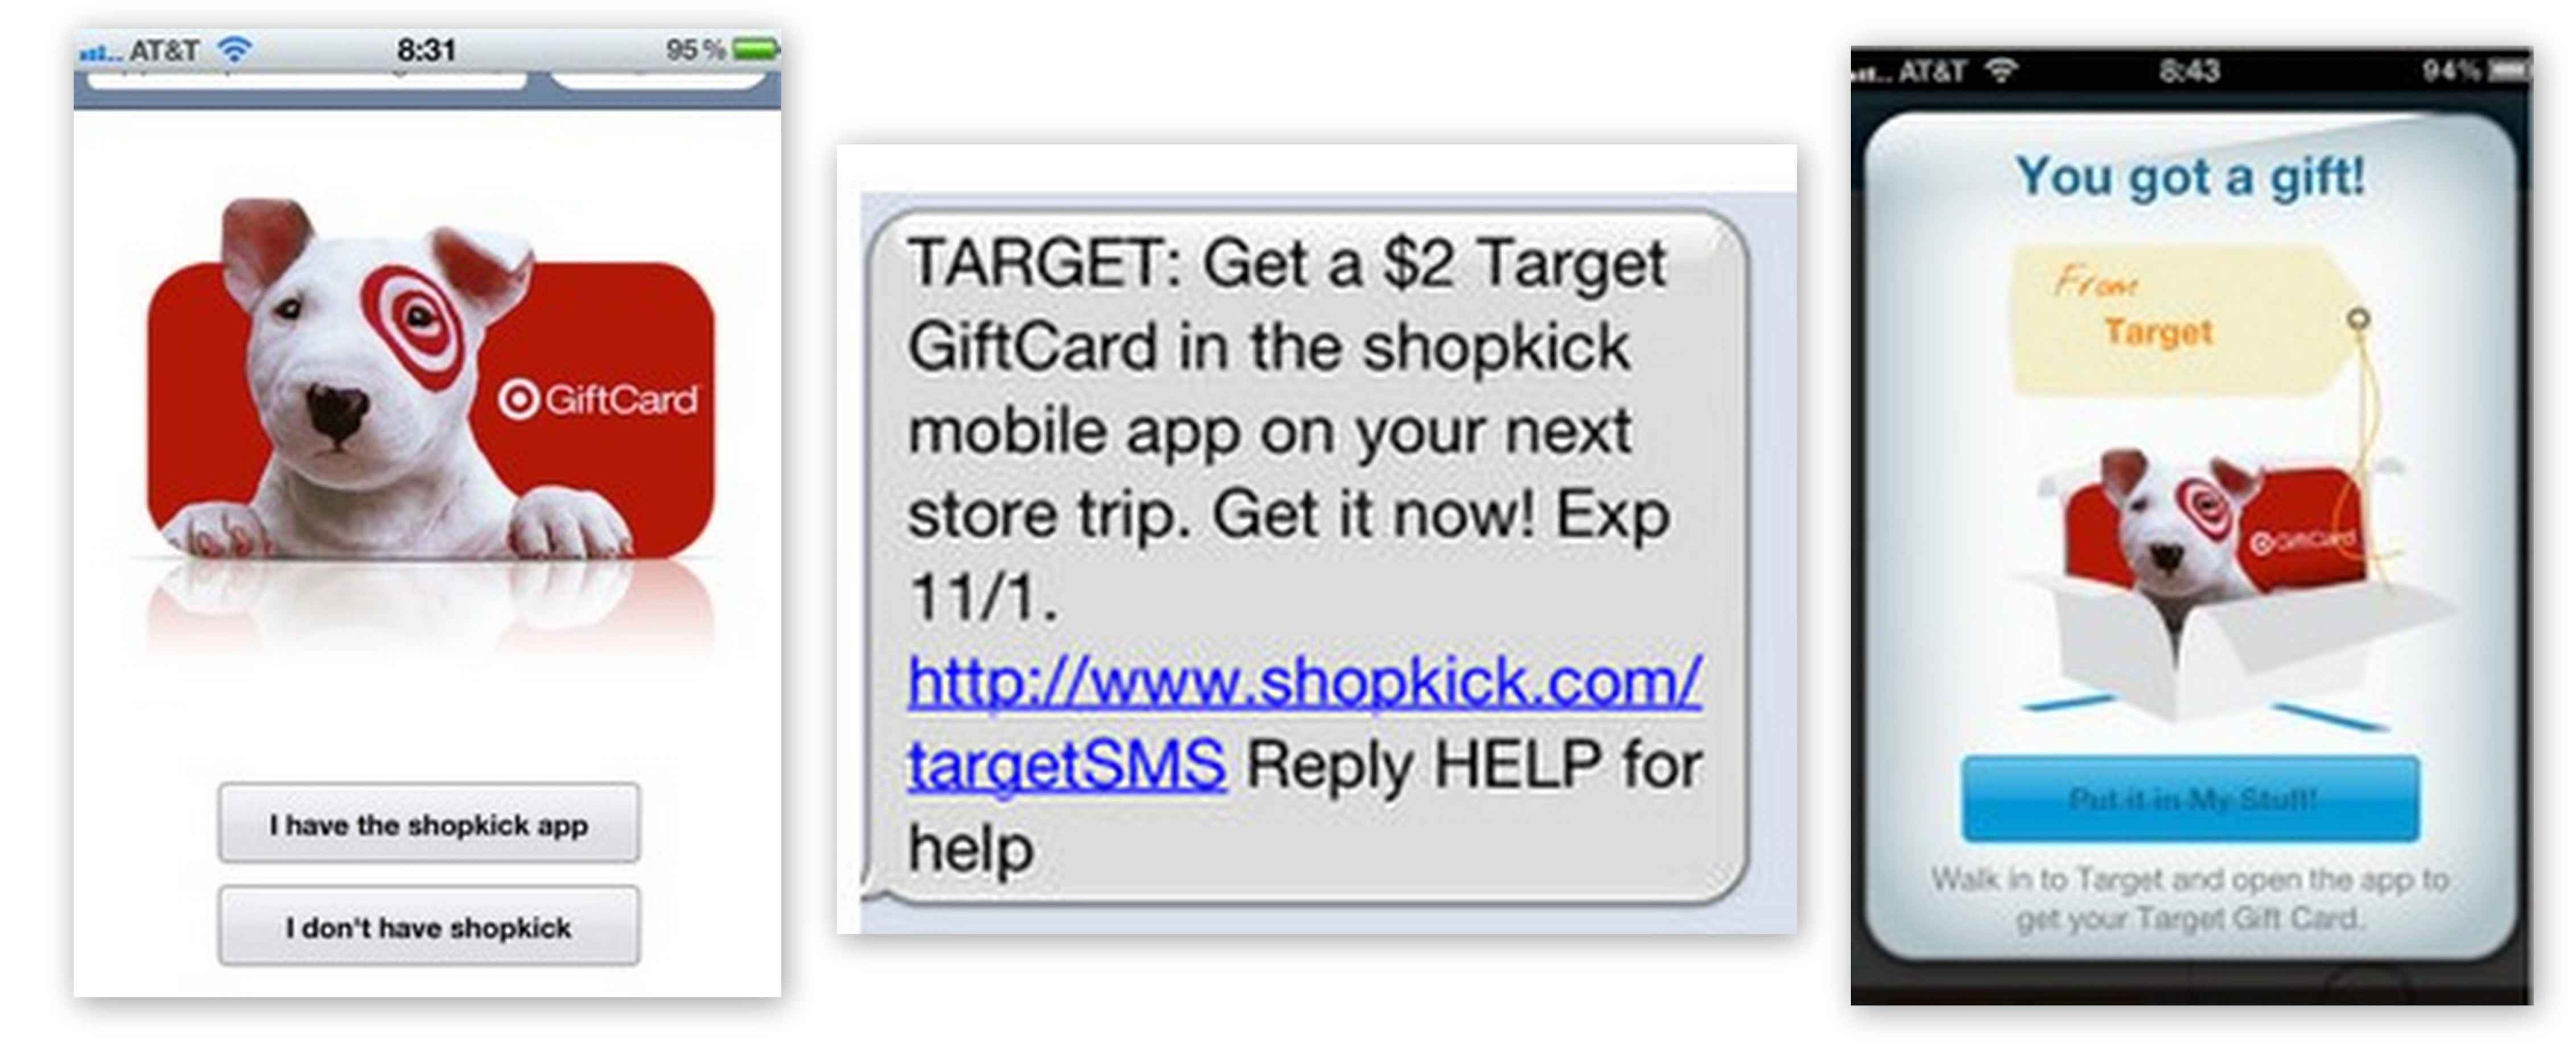 FREE $2 Target Gift Card From Shopkick App